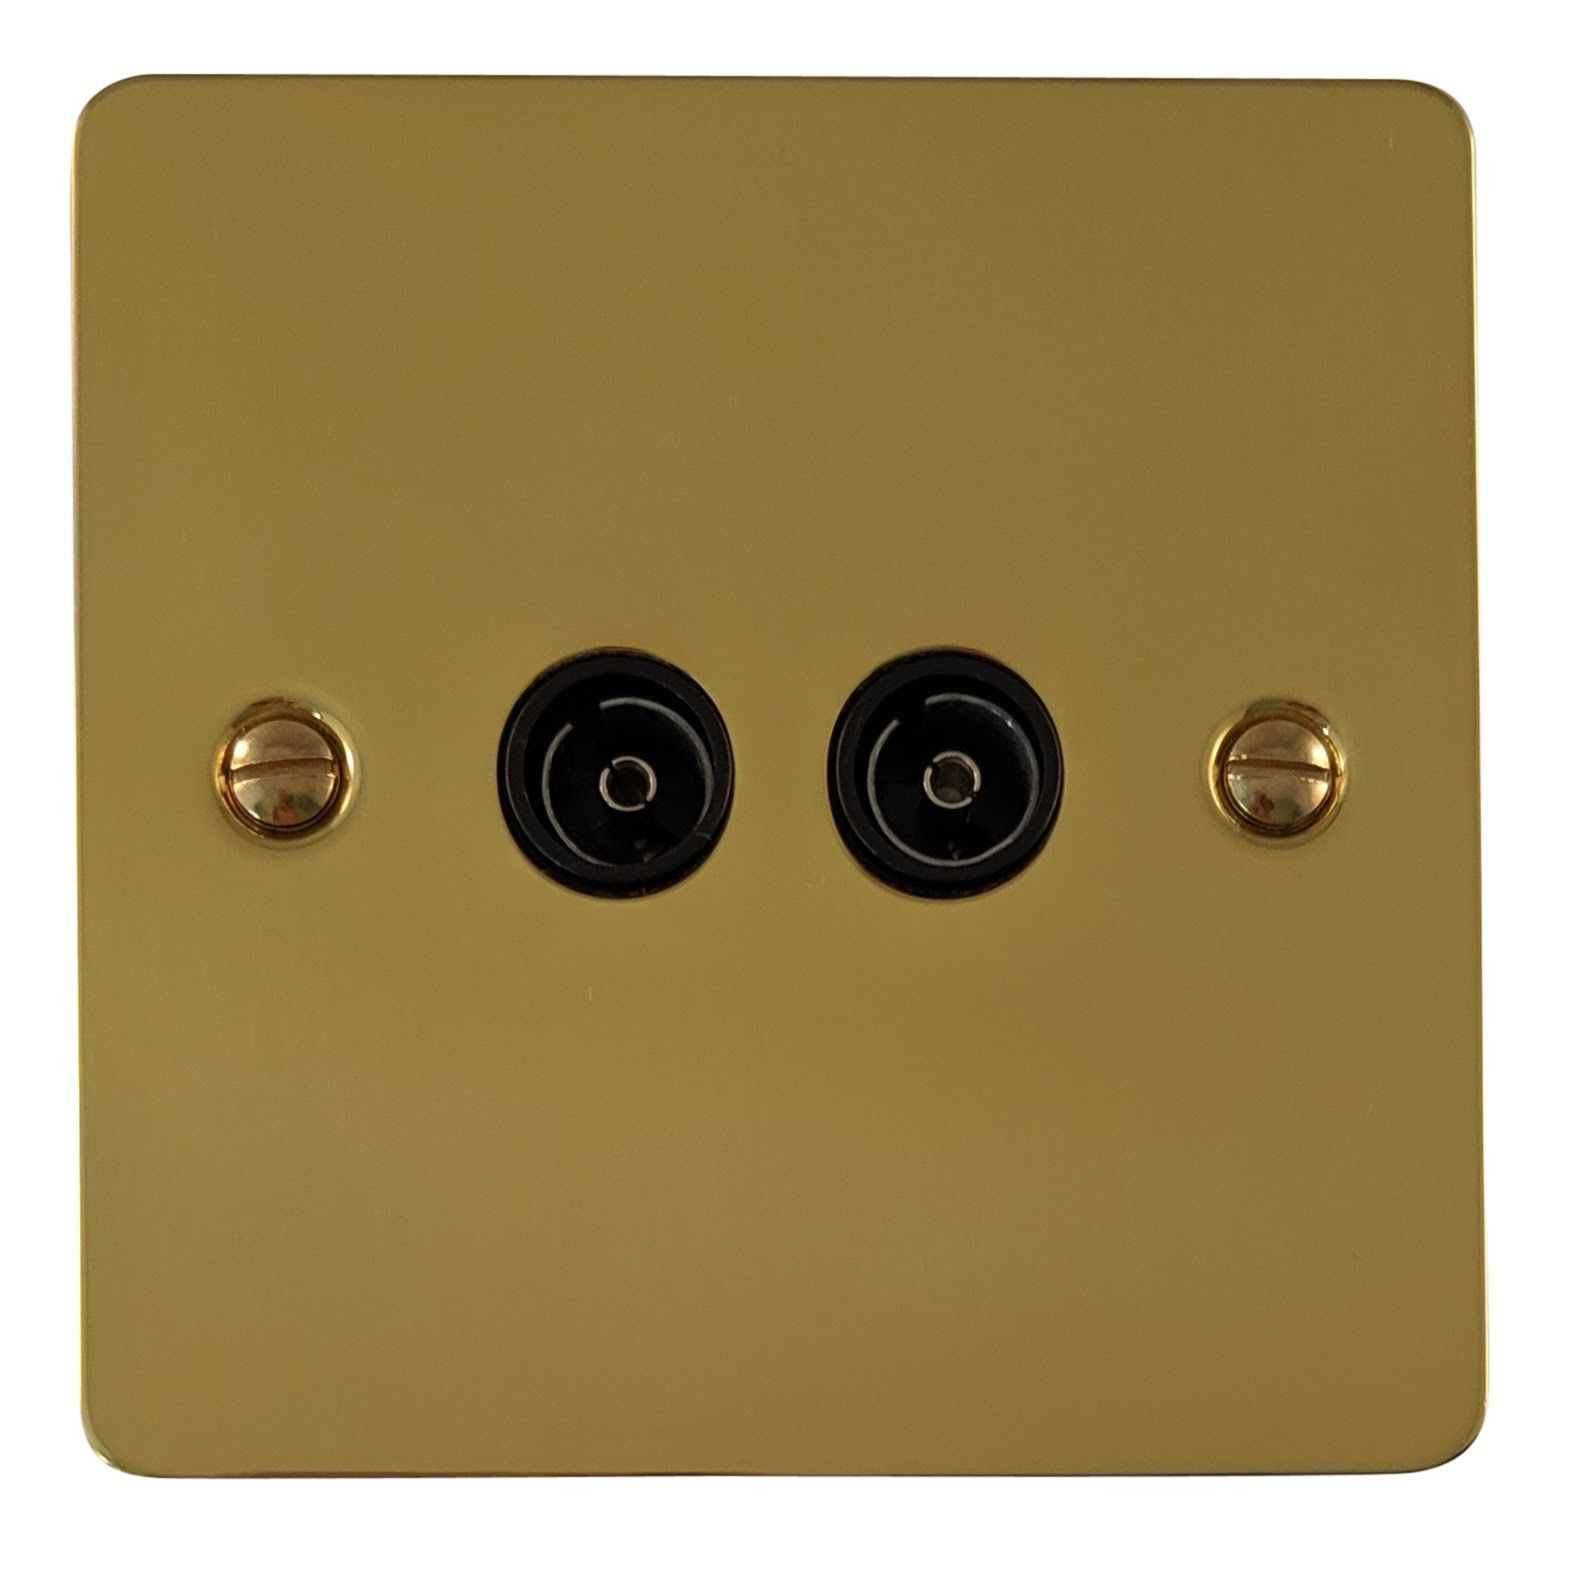 G&H FB36B Flat Plate Polished Brass 2 Gang TV Coax Socket Point